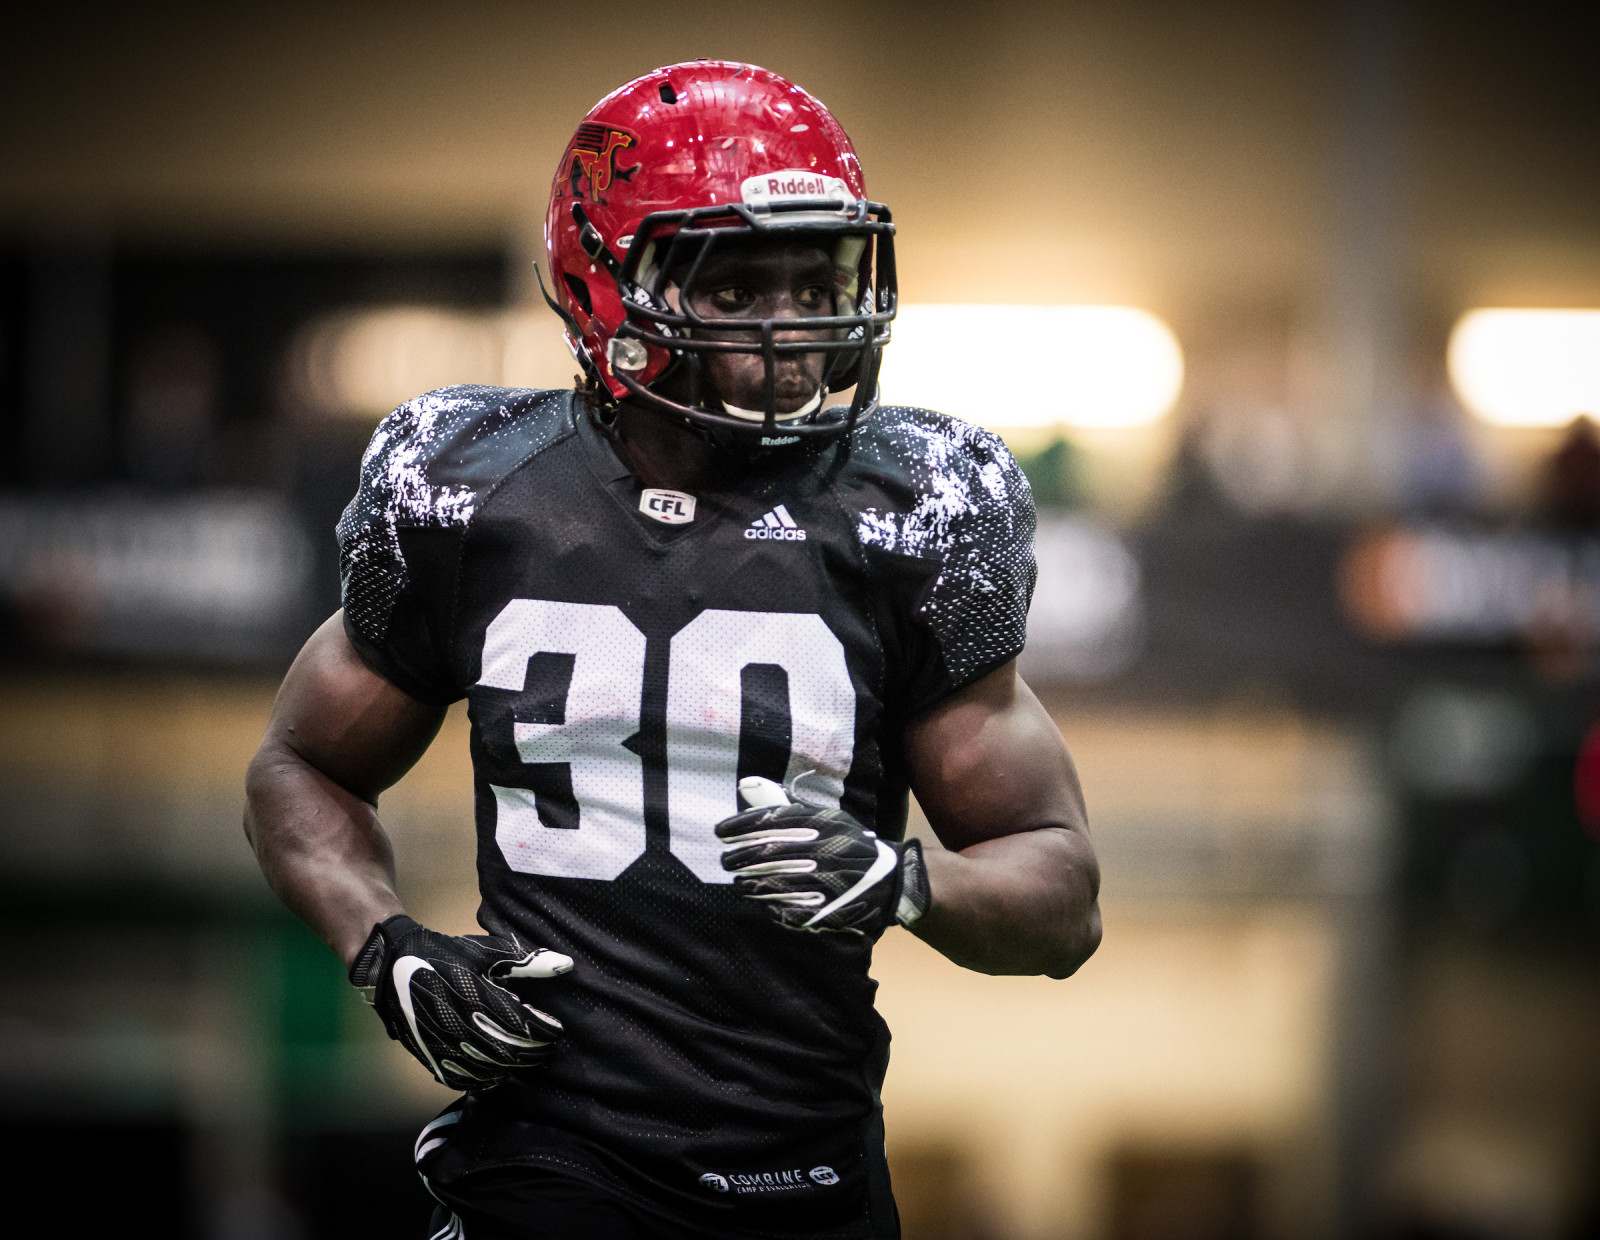 Johnny Augustine RB (Guelph) during the 2017 CFL combine in Regina, SK., Saturday, March 25, 2017. (Photo: Johany Jutras)